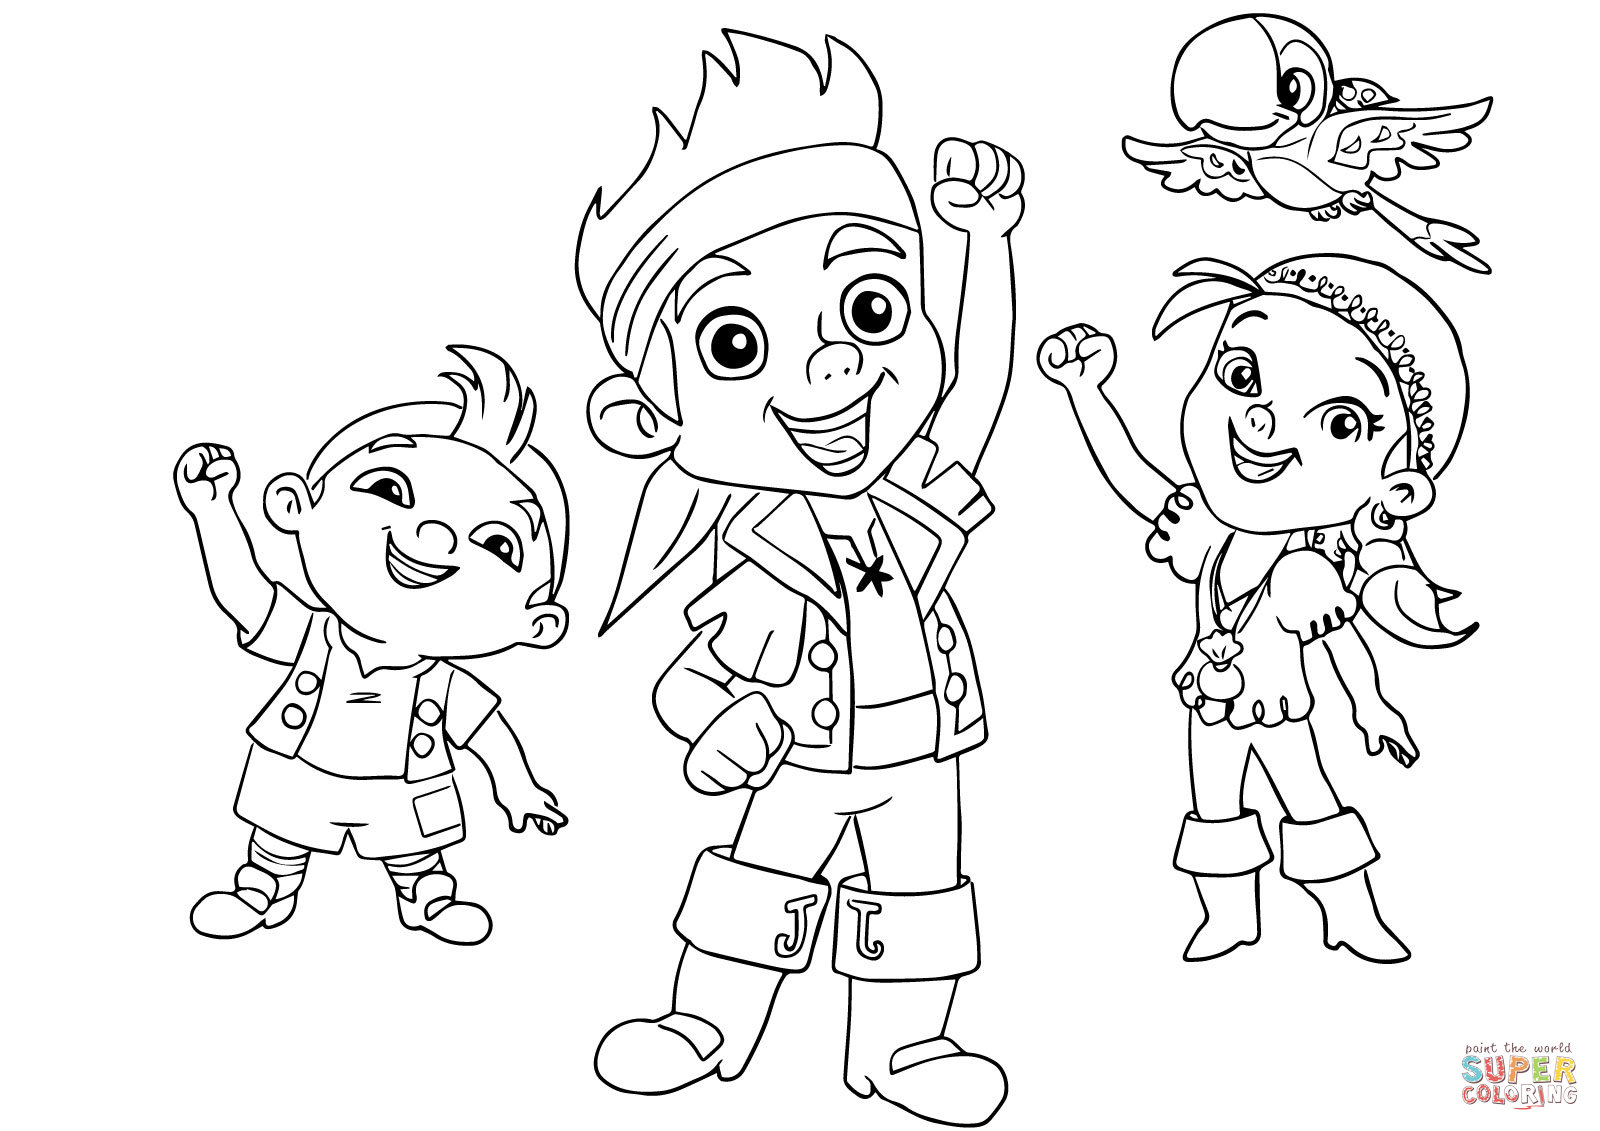 jake and the neverland pirates coloring page jake and the neverland pirates coloring pages the page jake and neverland pirates coloring